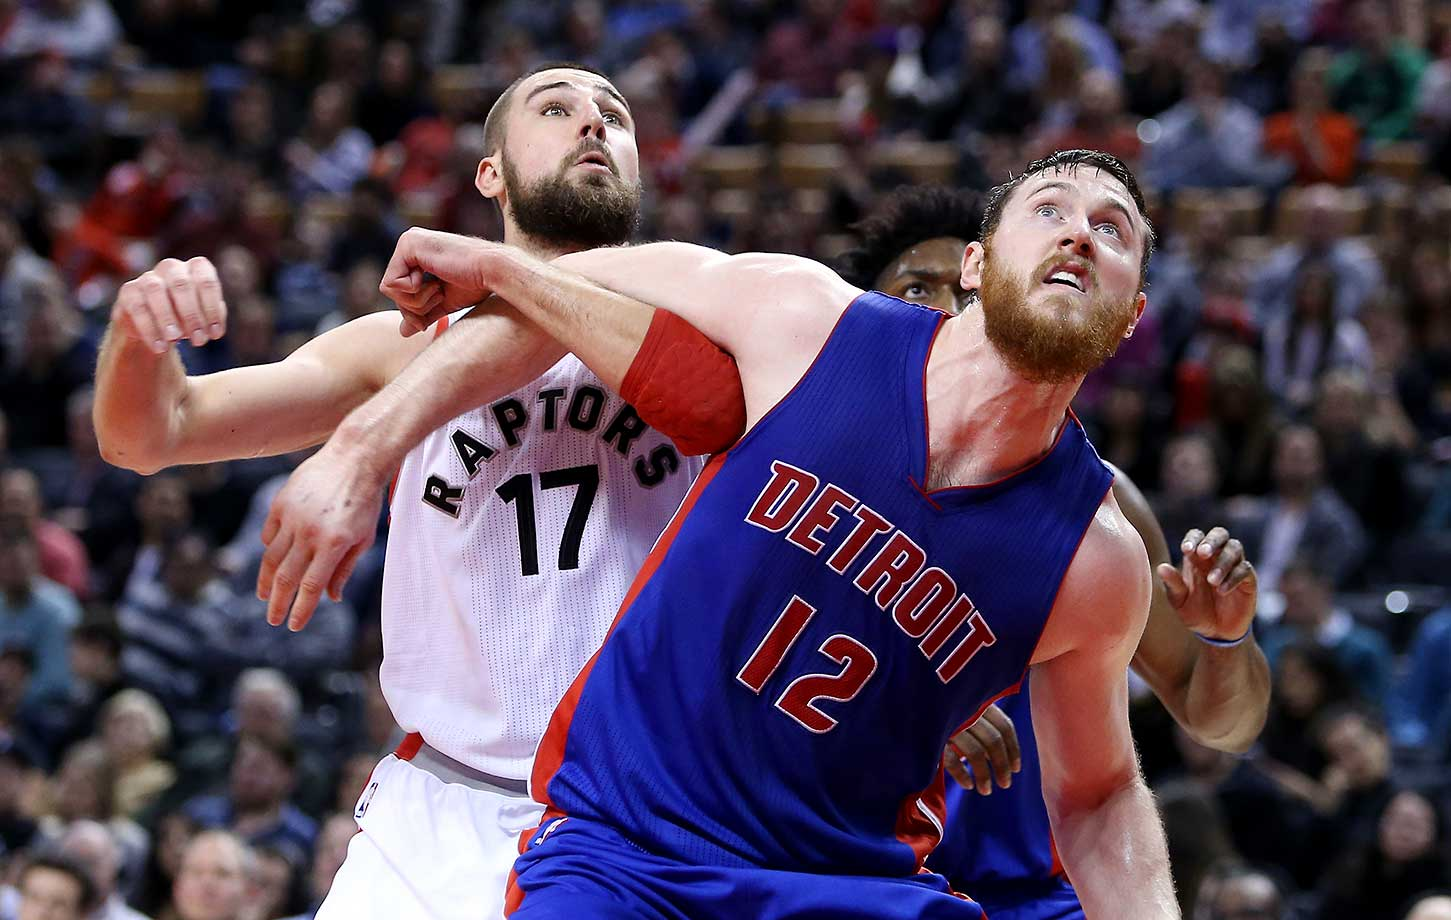 Jonas Valanciunas of the Toronto Raptors and Aron Baynes of the Detroit Pistons battle for a rebound in Toronto.